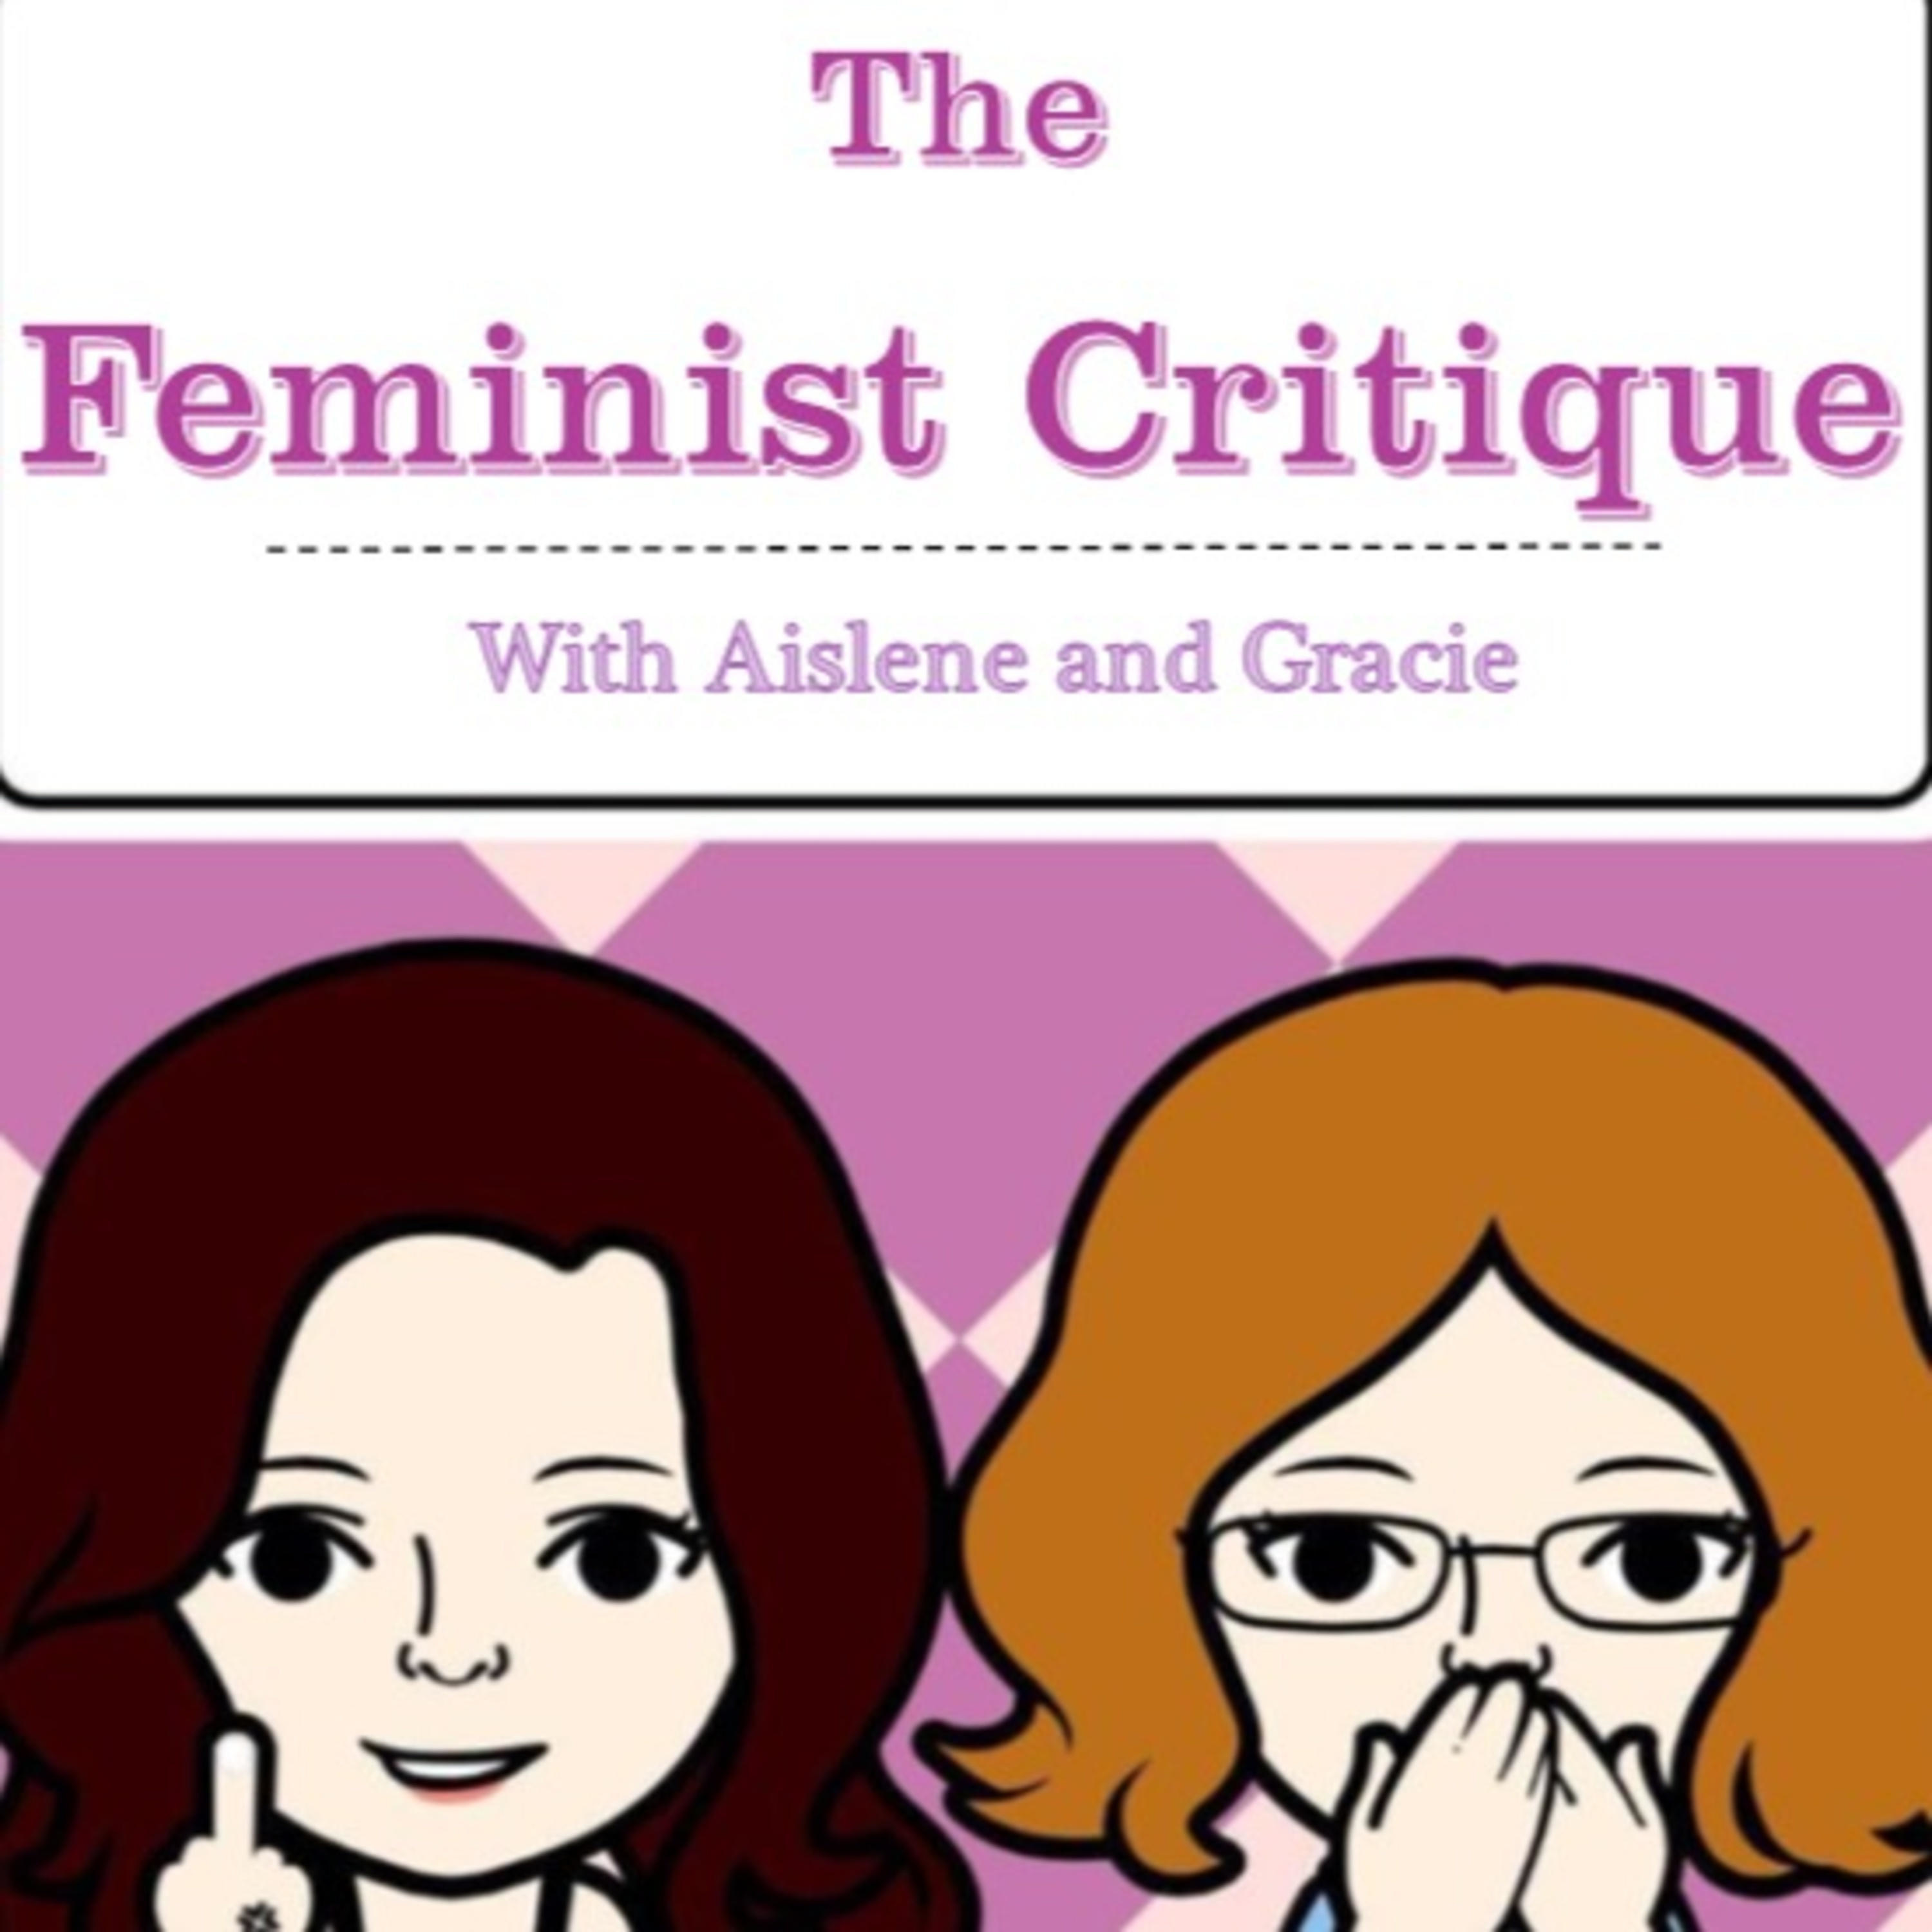 What happened to The Feminist Critique?